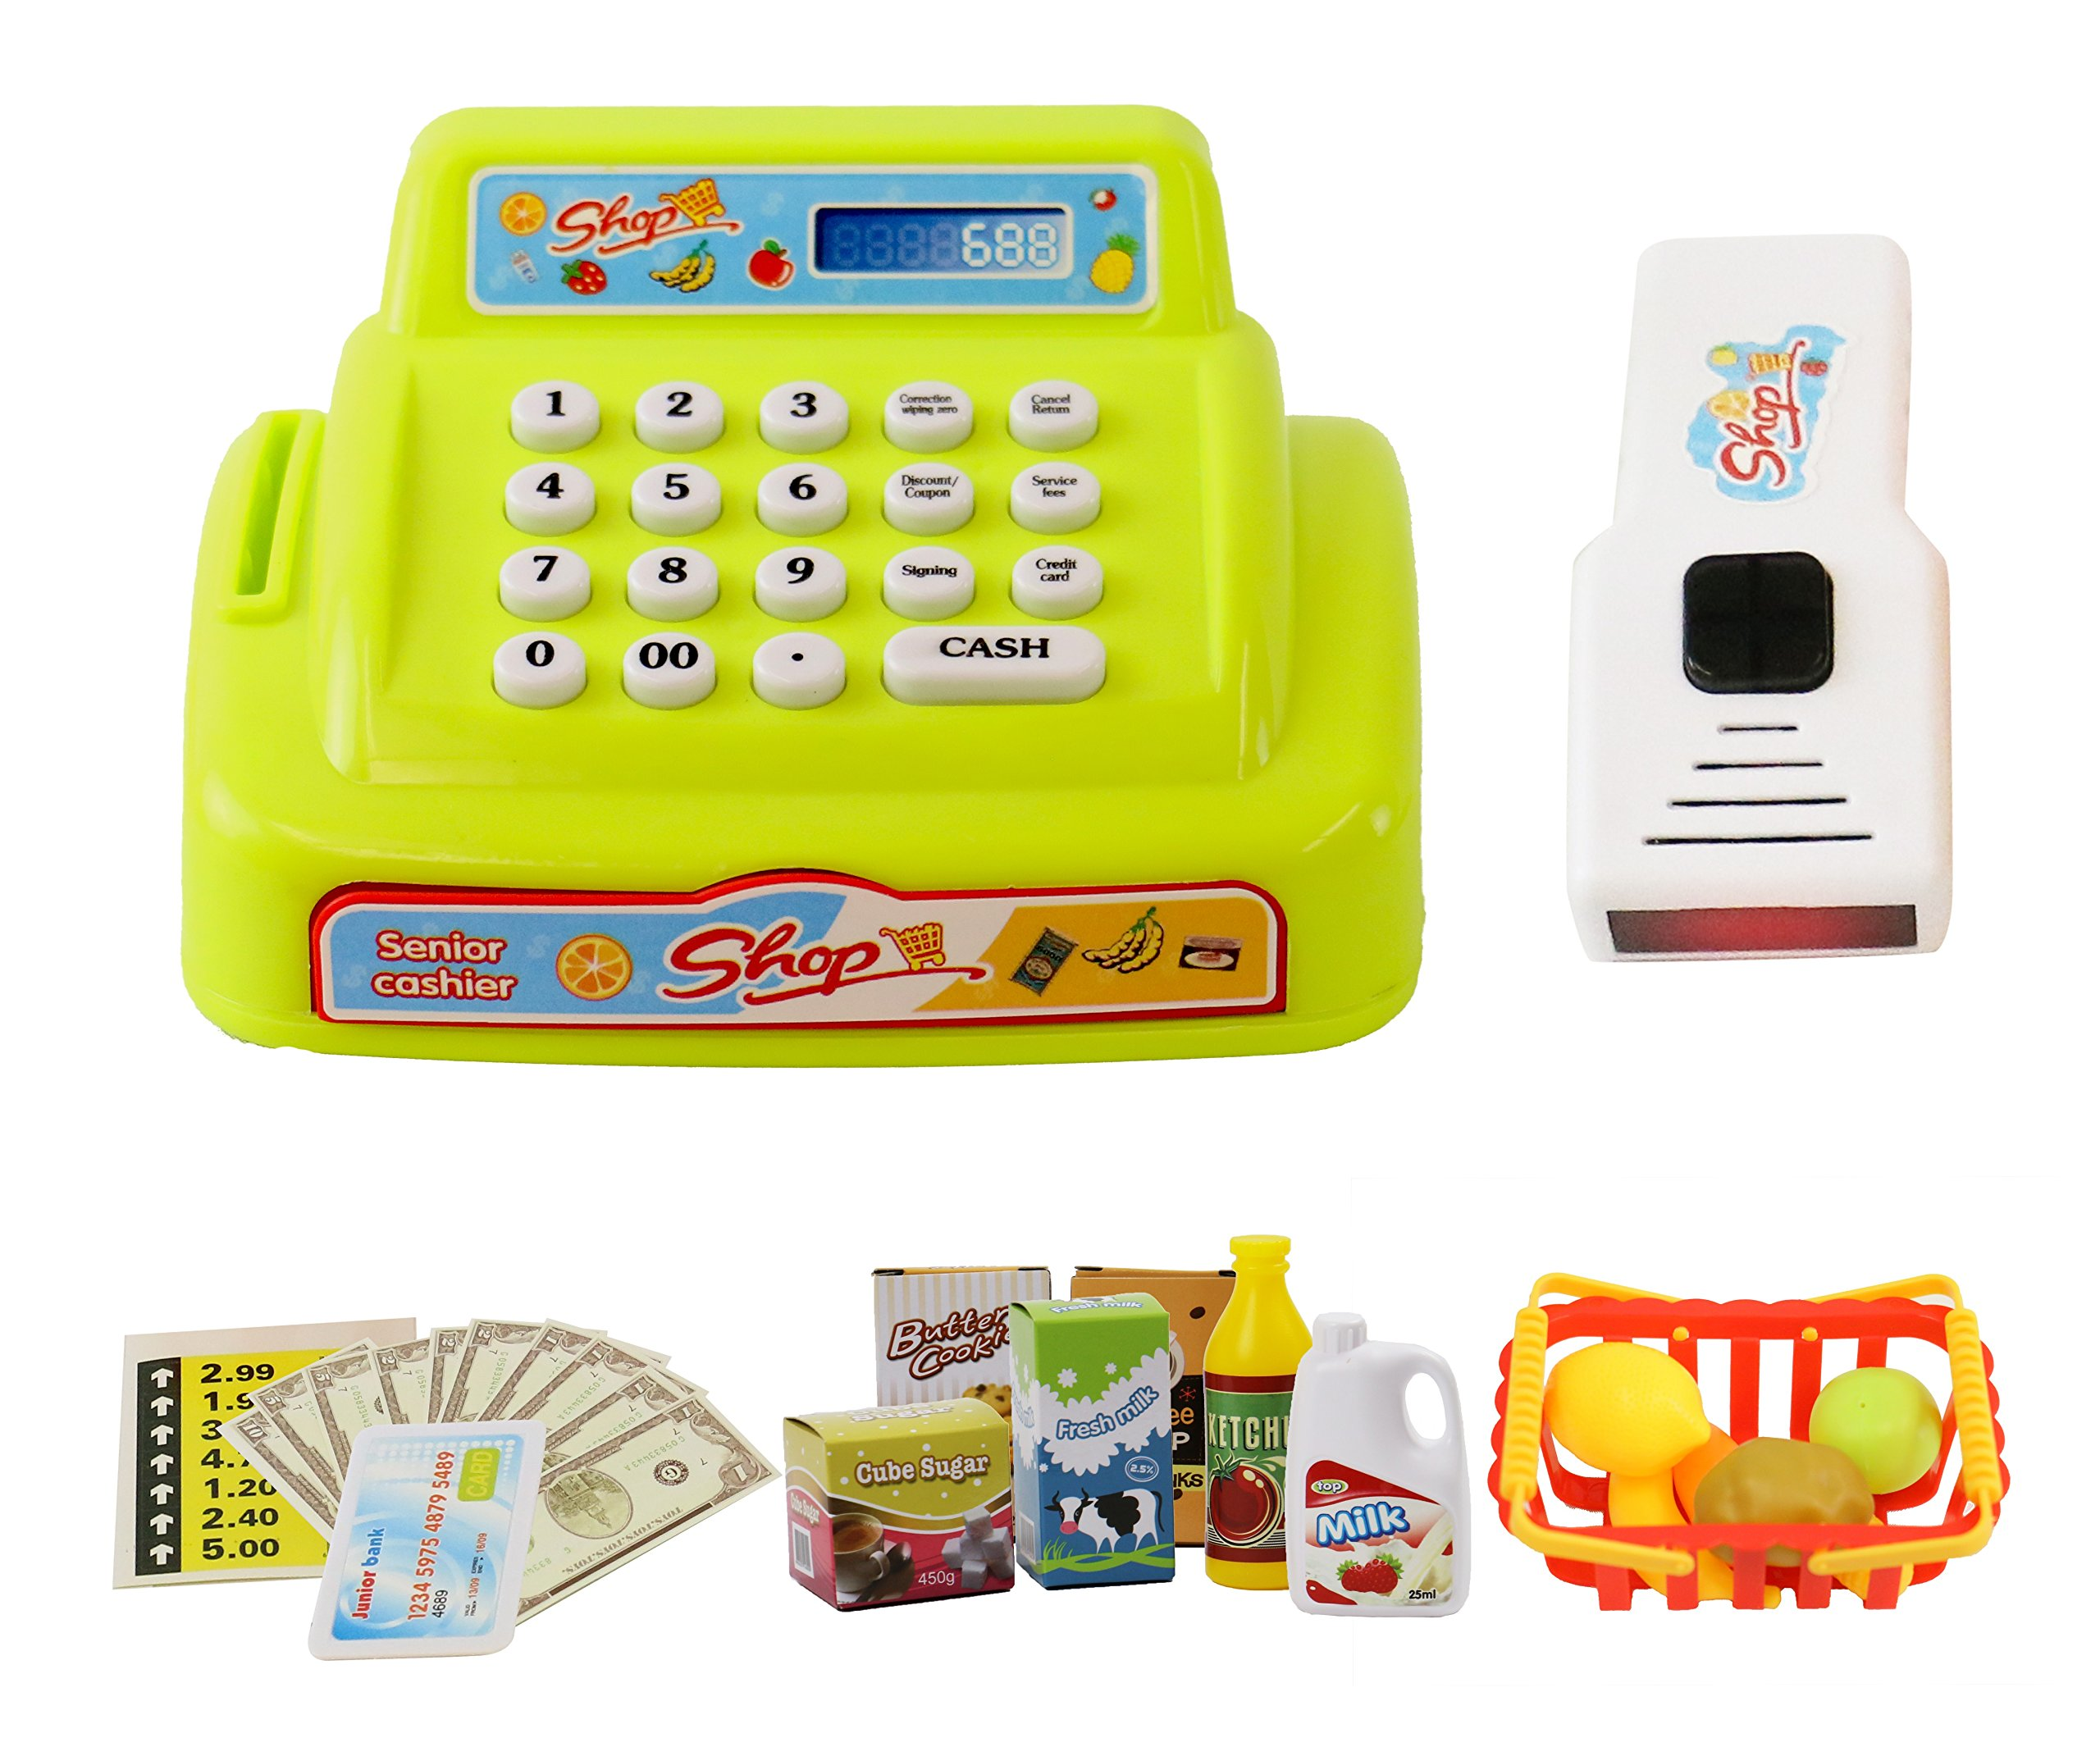 ToyThrill 26 Piece Cash Register Toy for Kids and Supermarket Play Set - with Lights and Sounds, Money, Credit Card, Food and and Groceries - Happy Little Shopping Game